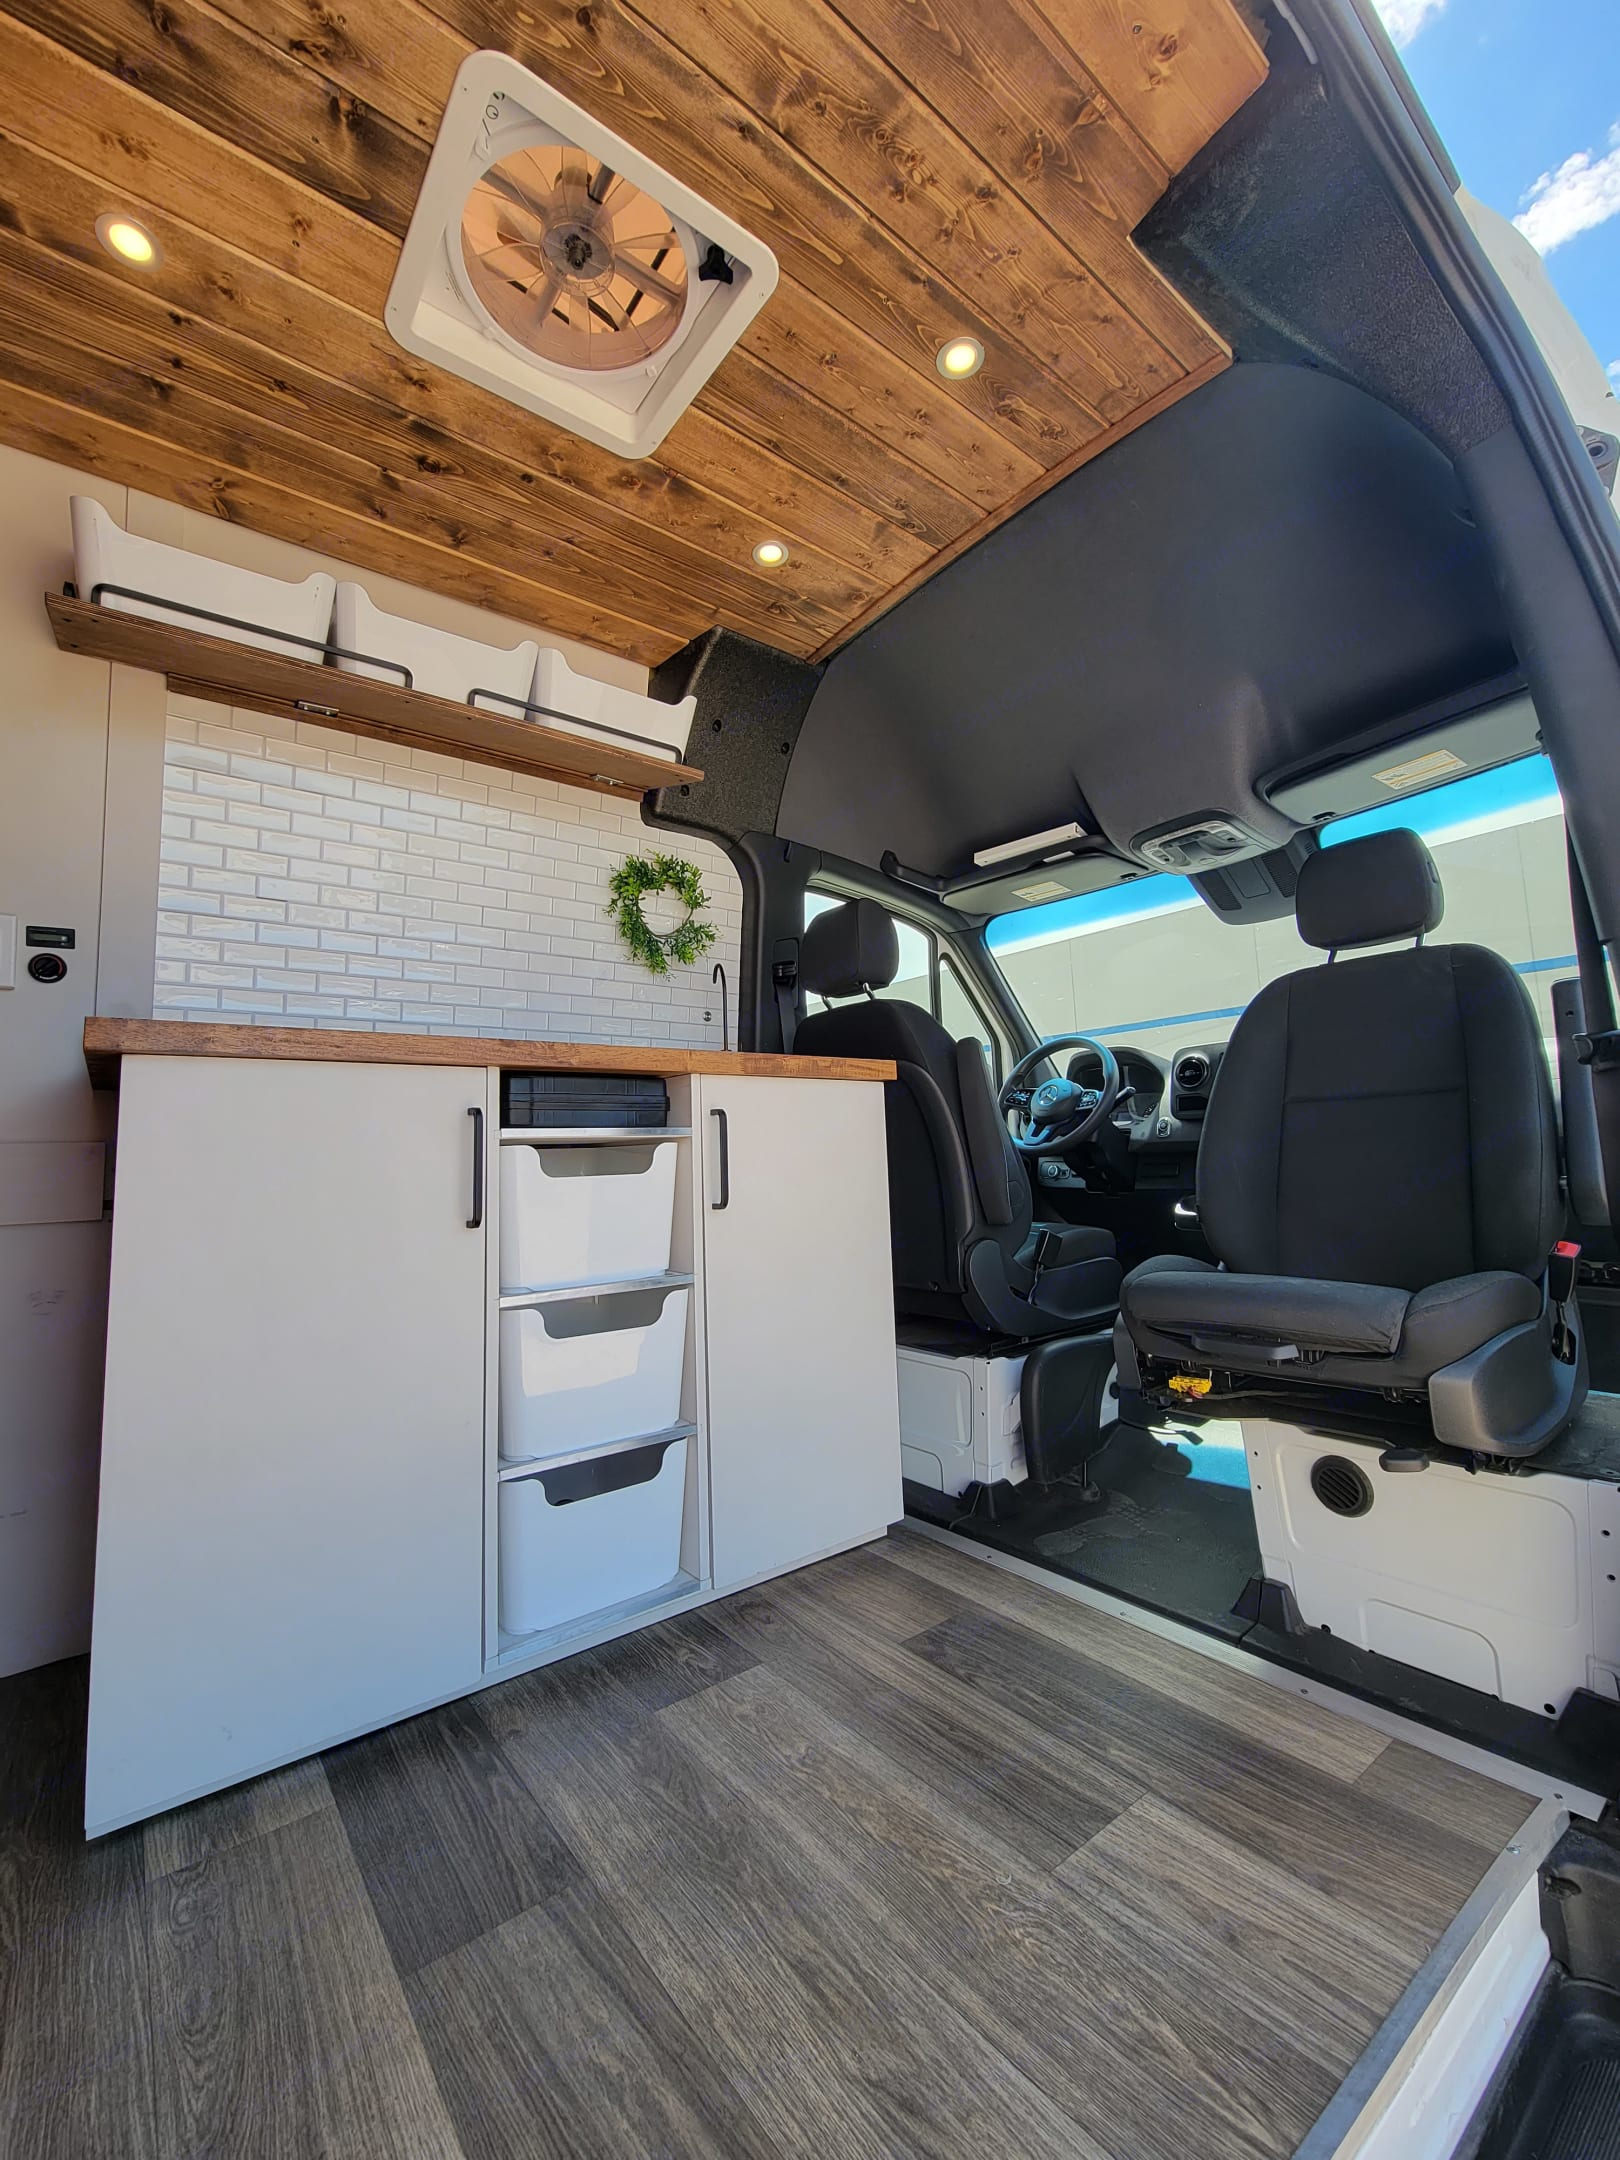 Swivel seat and built-in heater. Mercedes-Benz Sprinter 2020